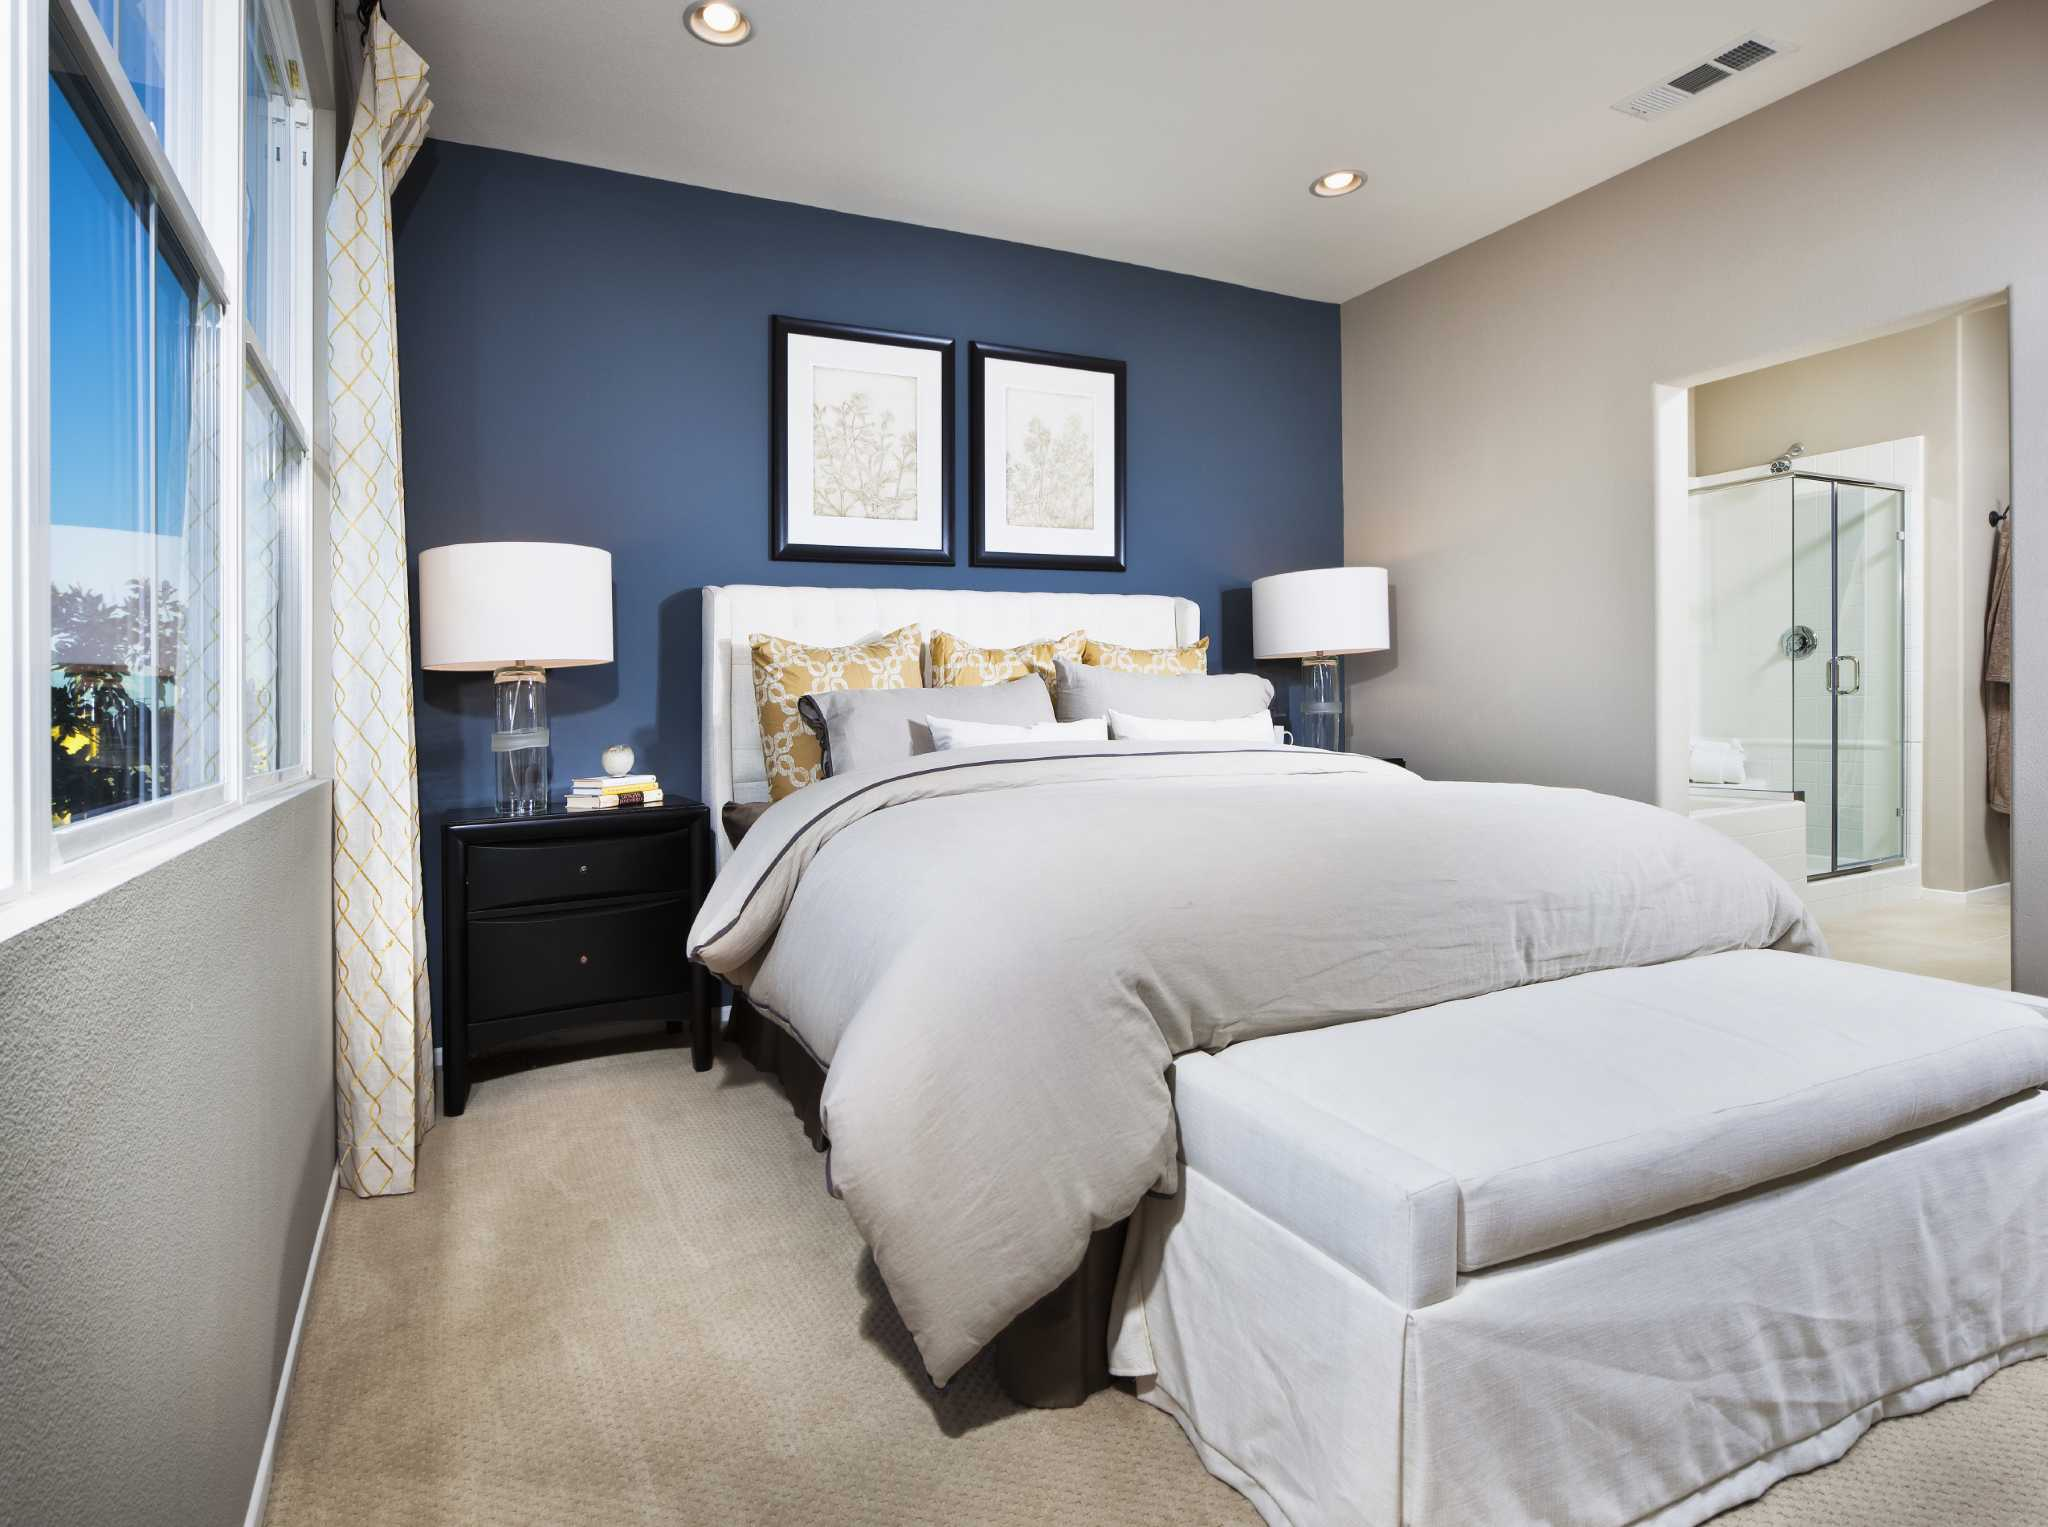 5 Beautiful Accent Wall Ideas To Spruce Up Your Home: Simple DIY Updates To Spruce Up Your Home